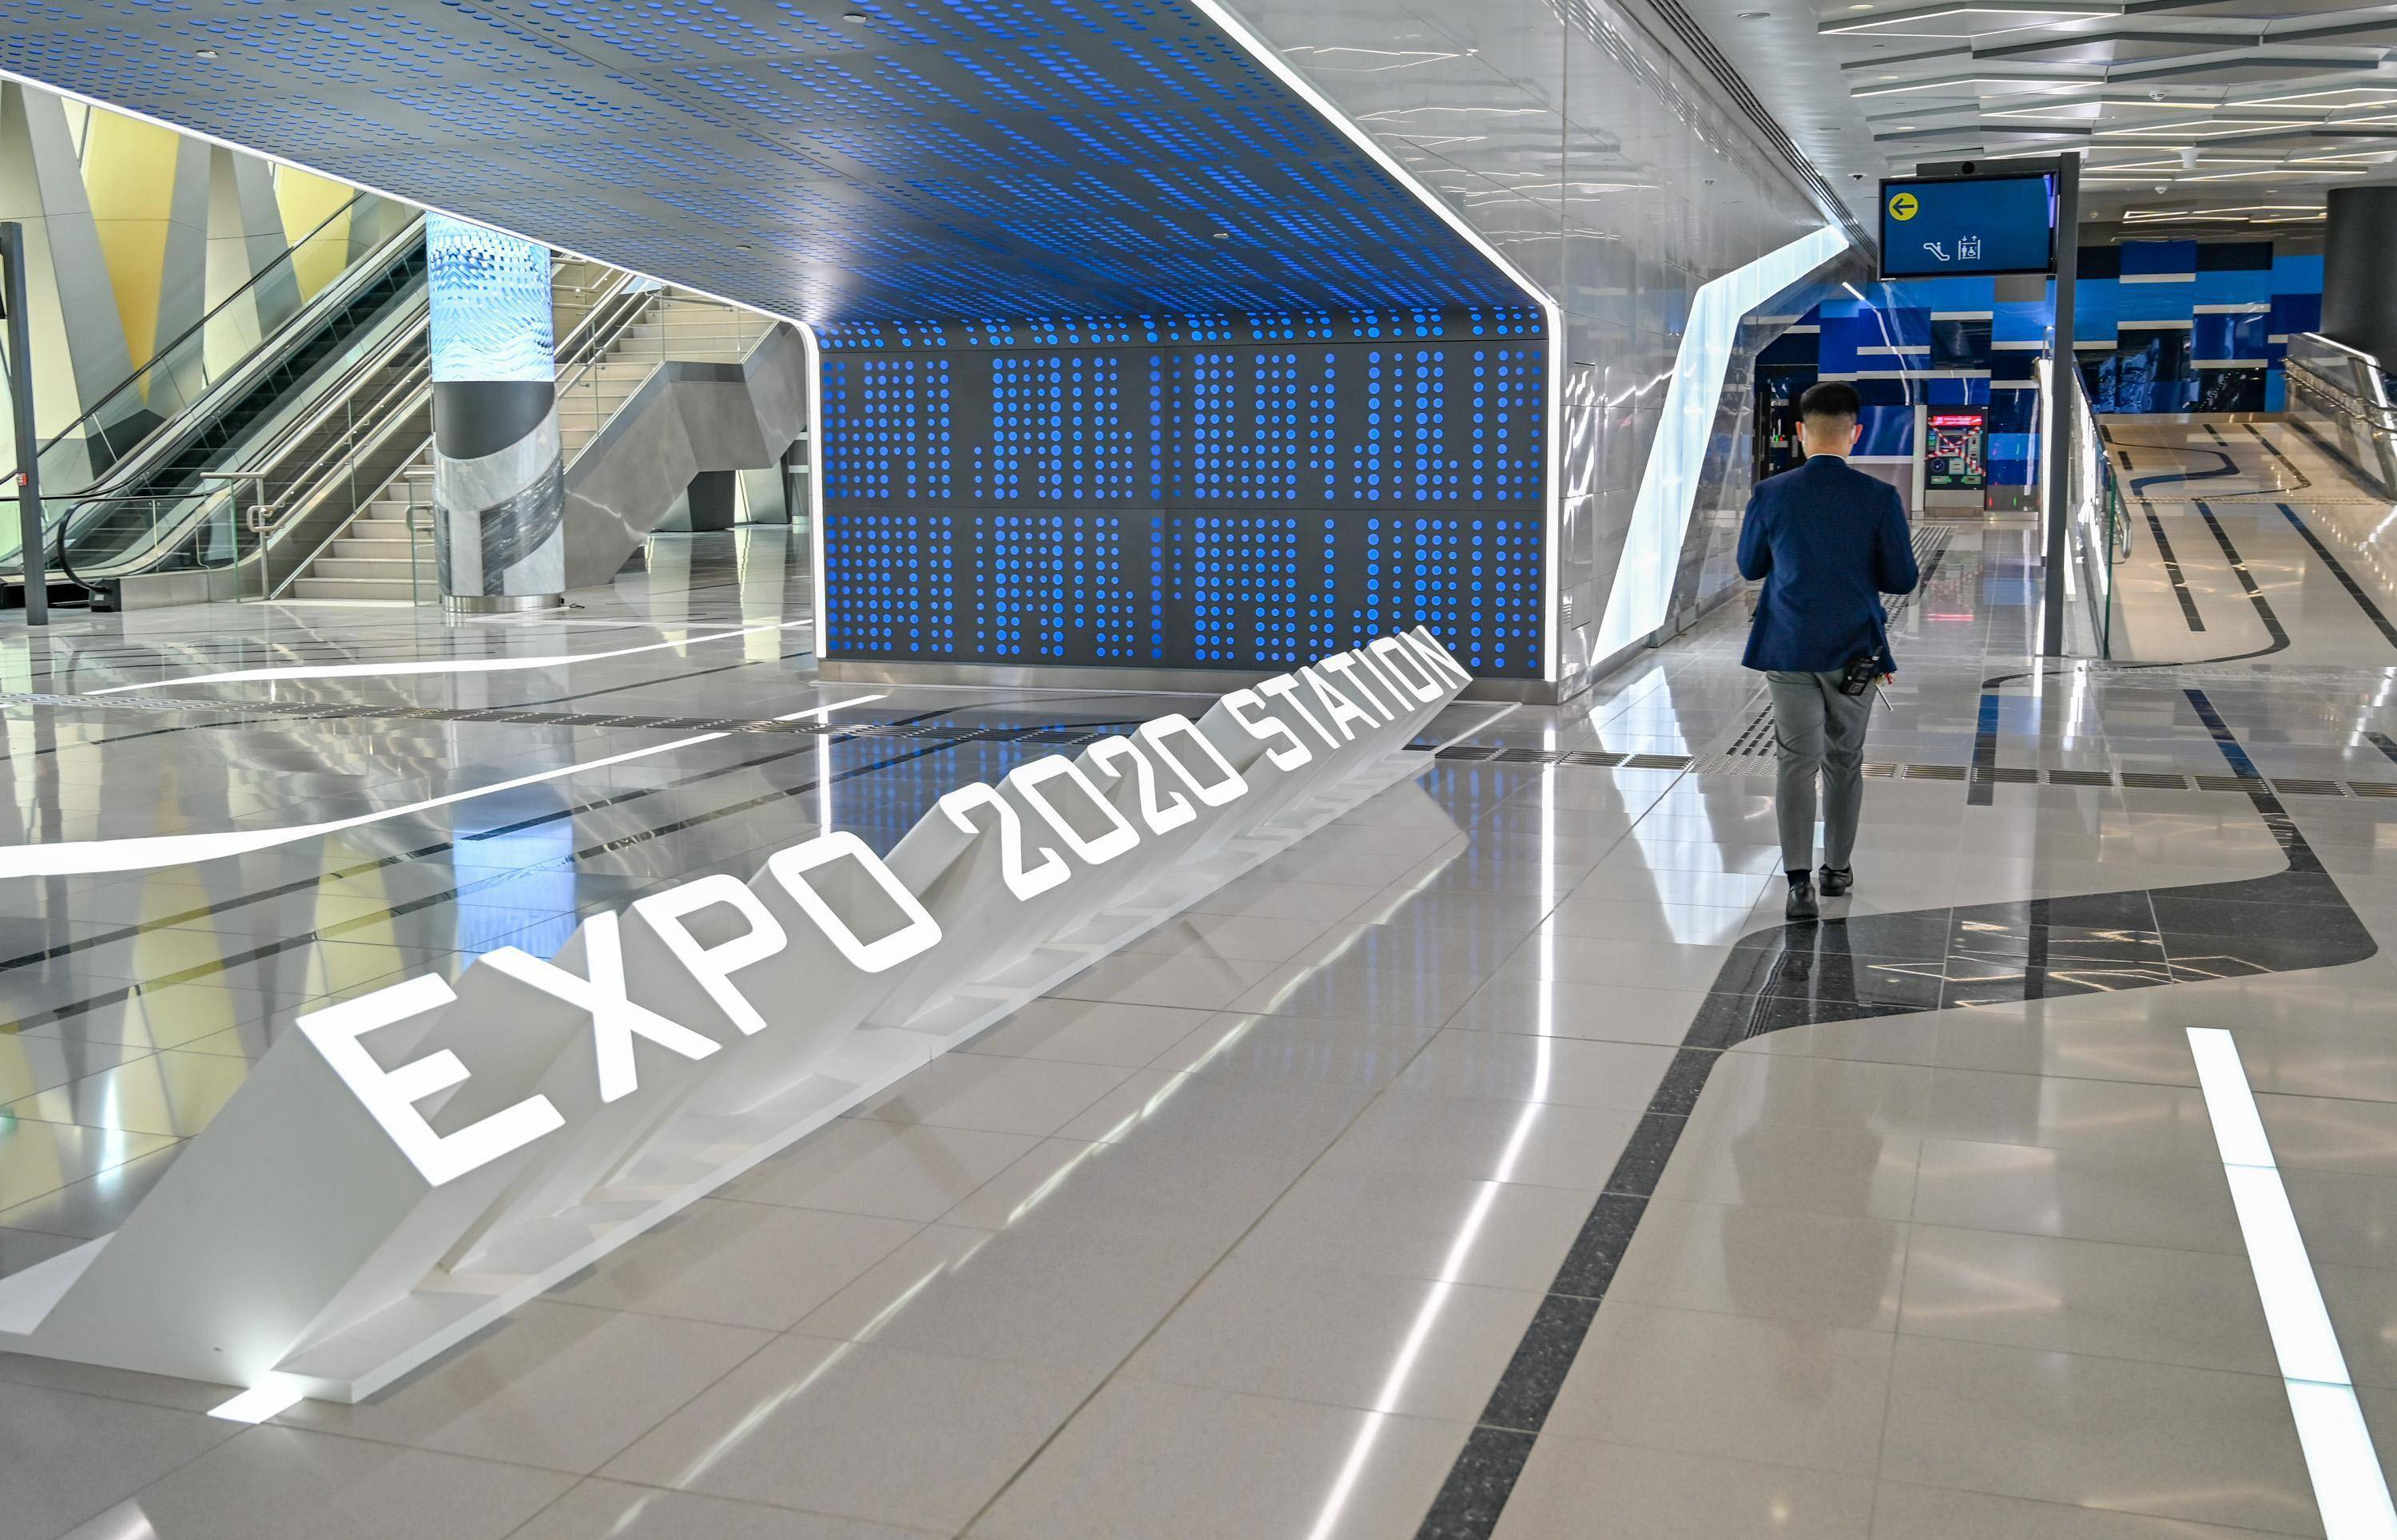 Dubai Metro Route 2020: All you need to know about getting to the Expo site